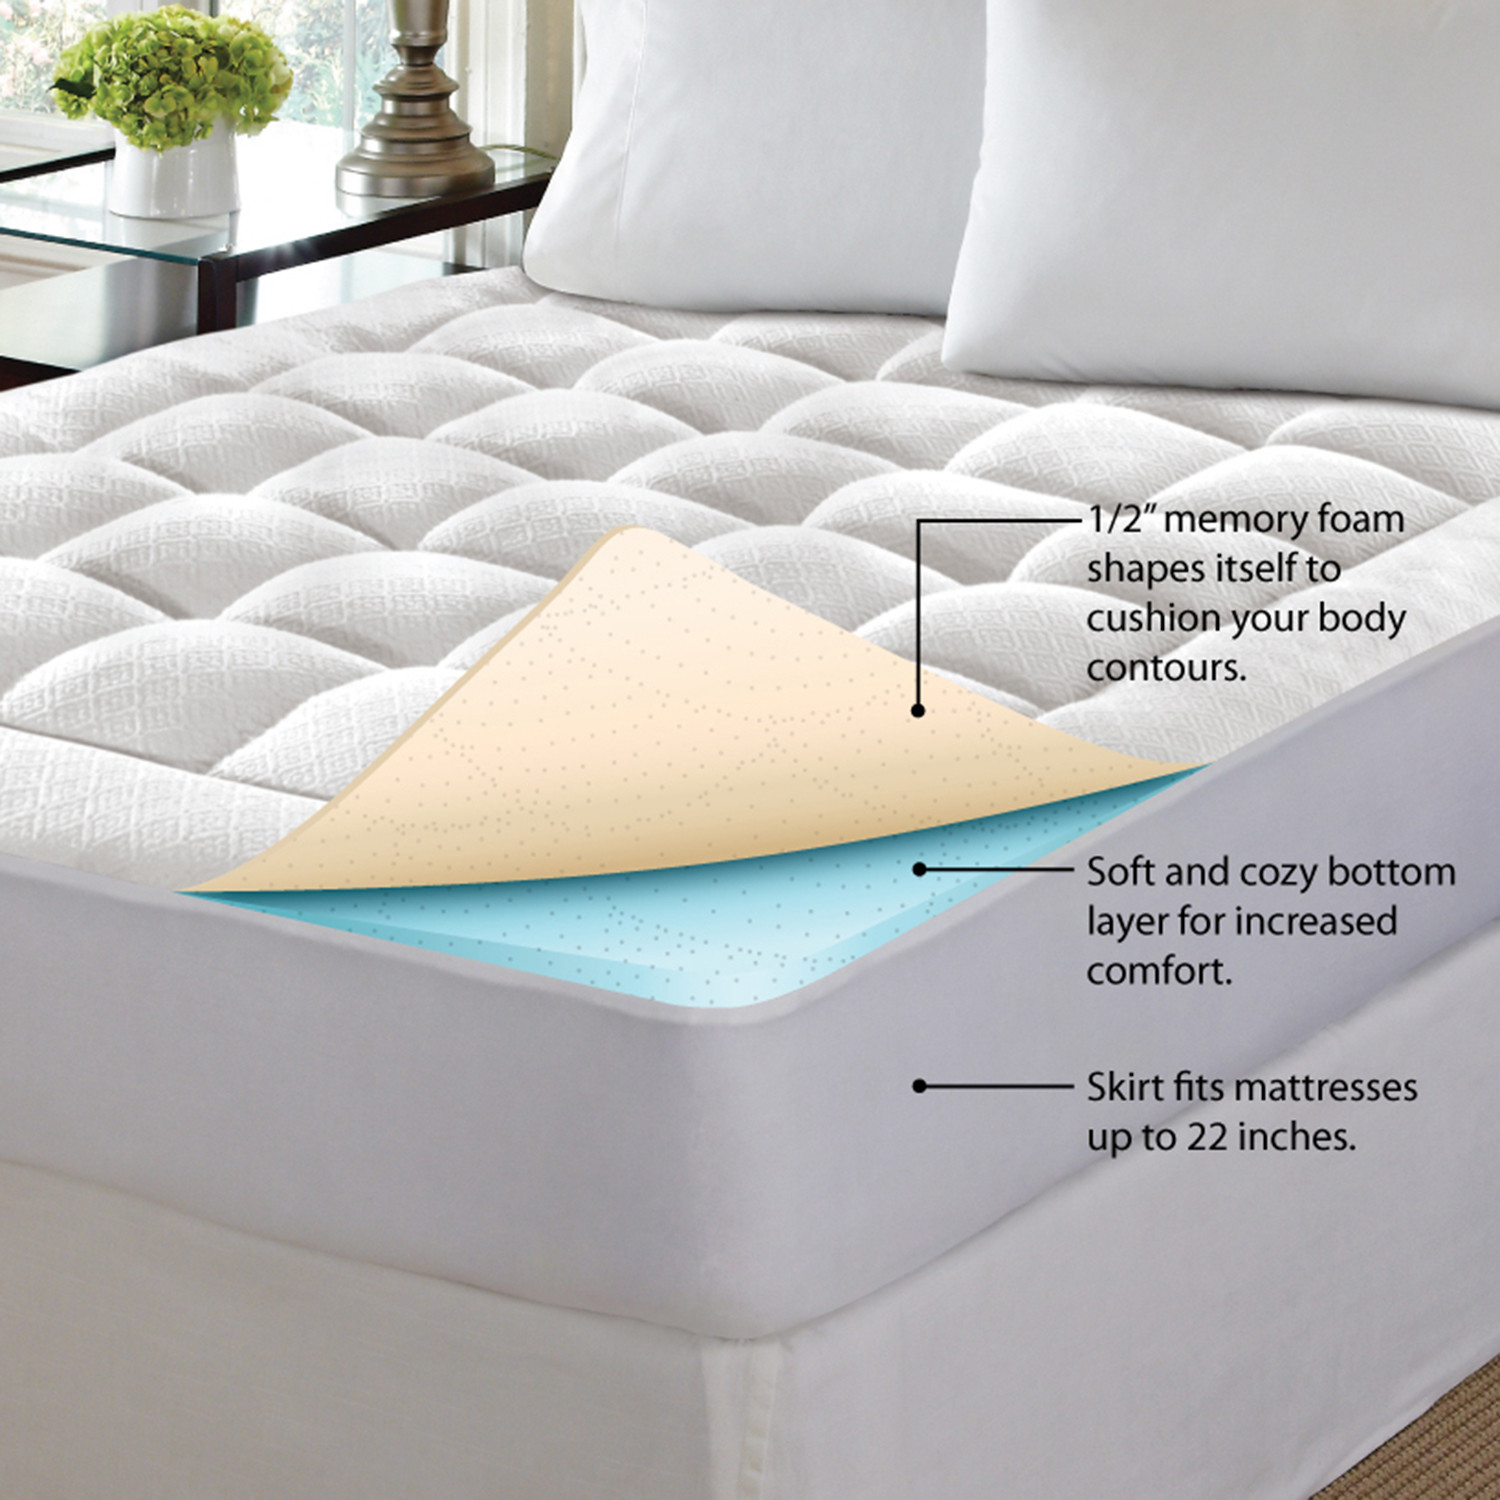 Pure Rest Washable Memory Foam Mattress Pad Full Pure Rest By Rio Home Fashions Touch Of